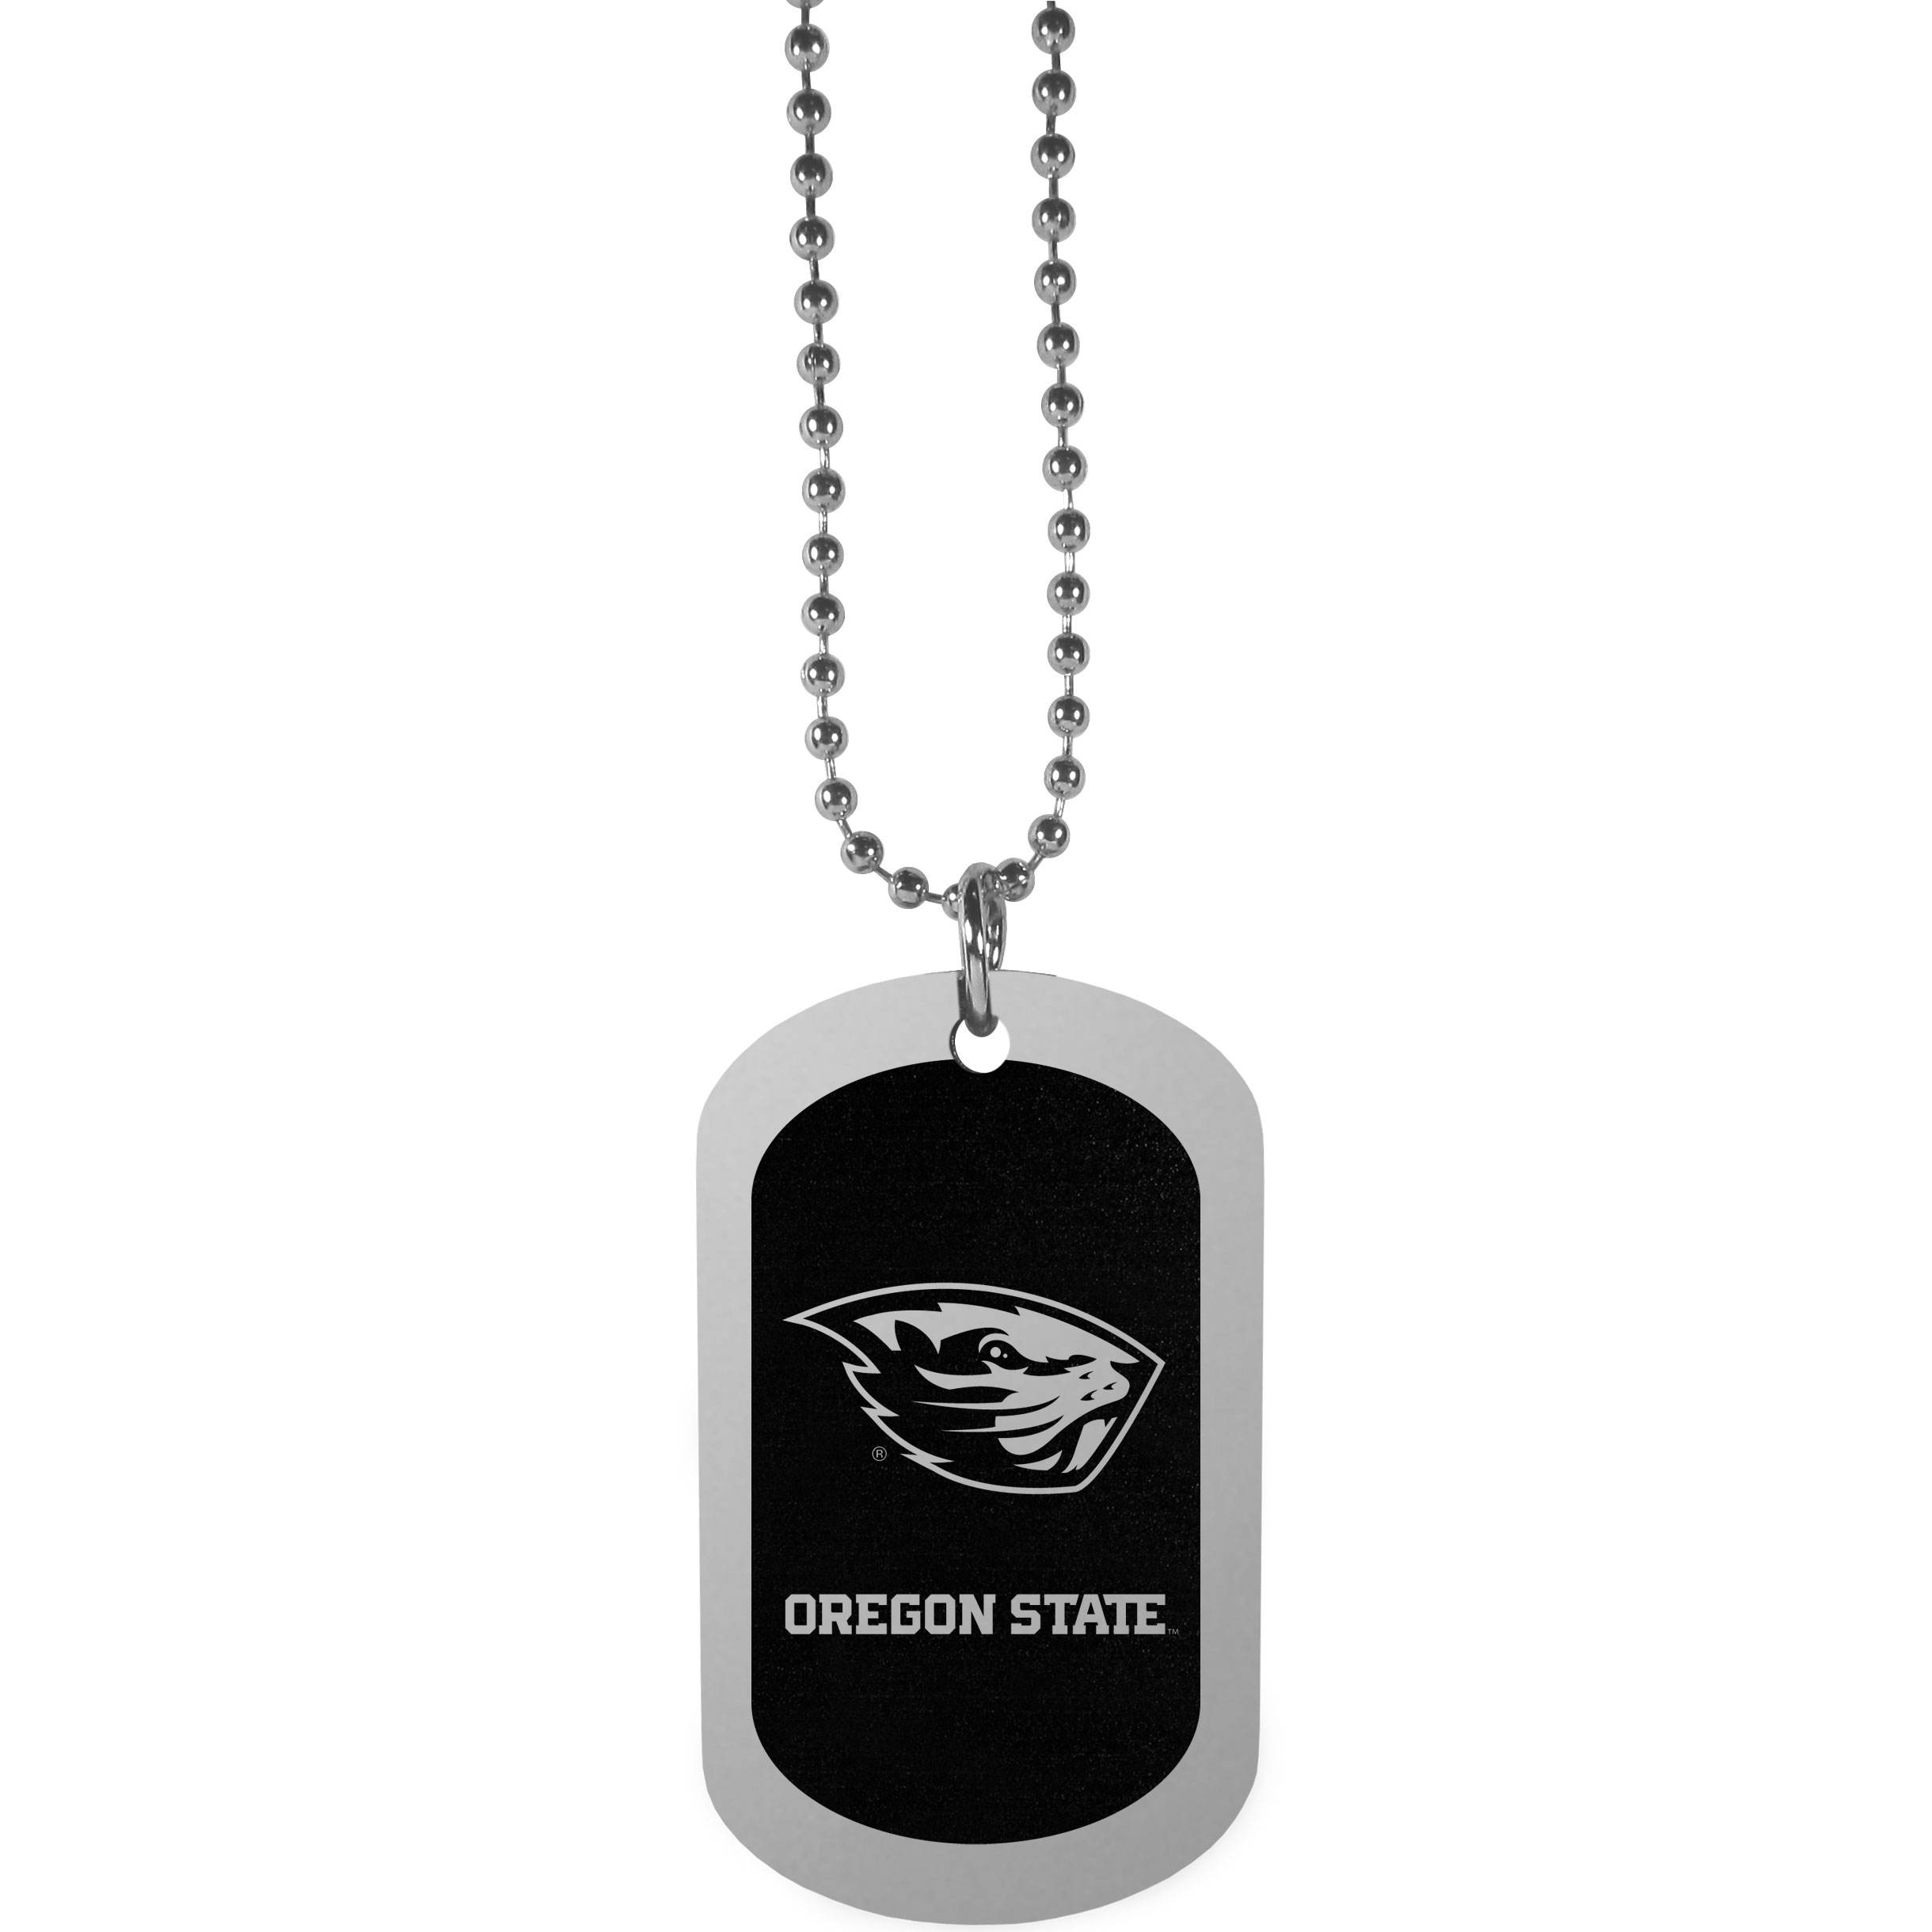 Oregon St. Beavers Chrome Tag Necklace - Dog tag necklaces are a fashion statement that is here to stay. The sporty version of the classic tag features a black printed over a high polish tag to create a bold and sporty look. The tag comes on a 26 inch ball chain with a ball and joint clasp. Any Oregon St. Beavers would be proud to wear this attractive fashion accessory.